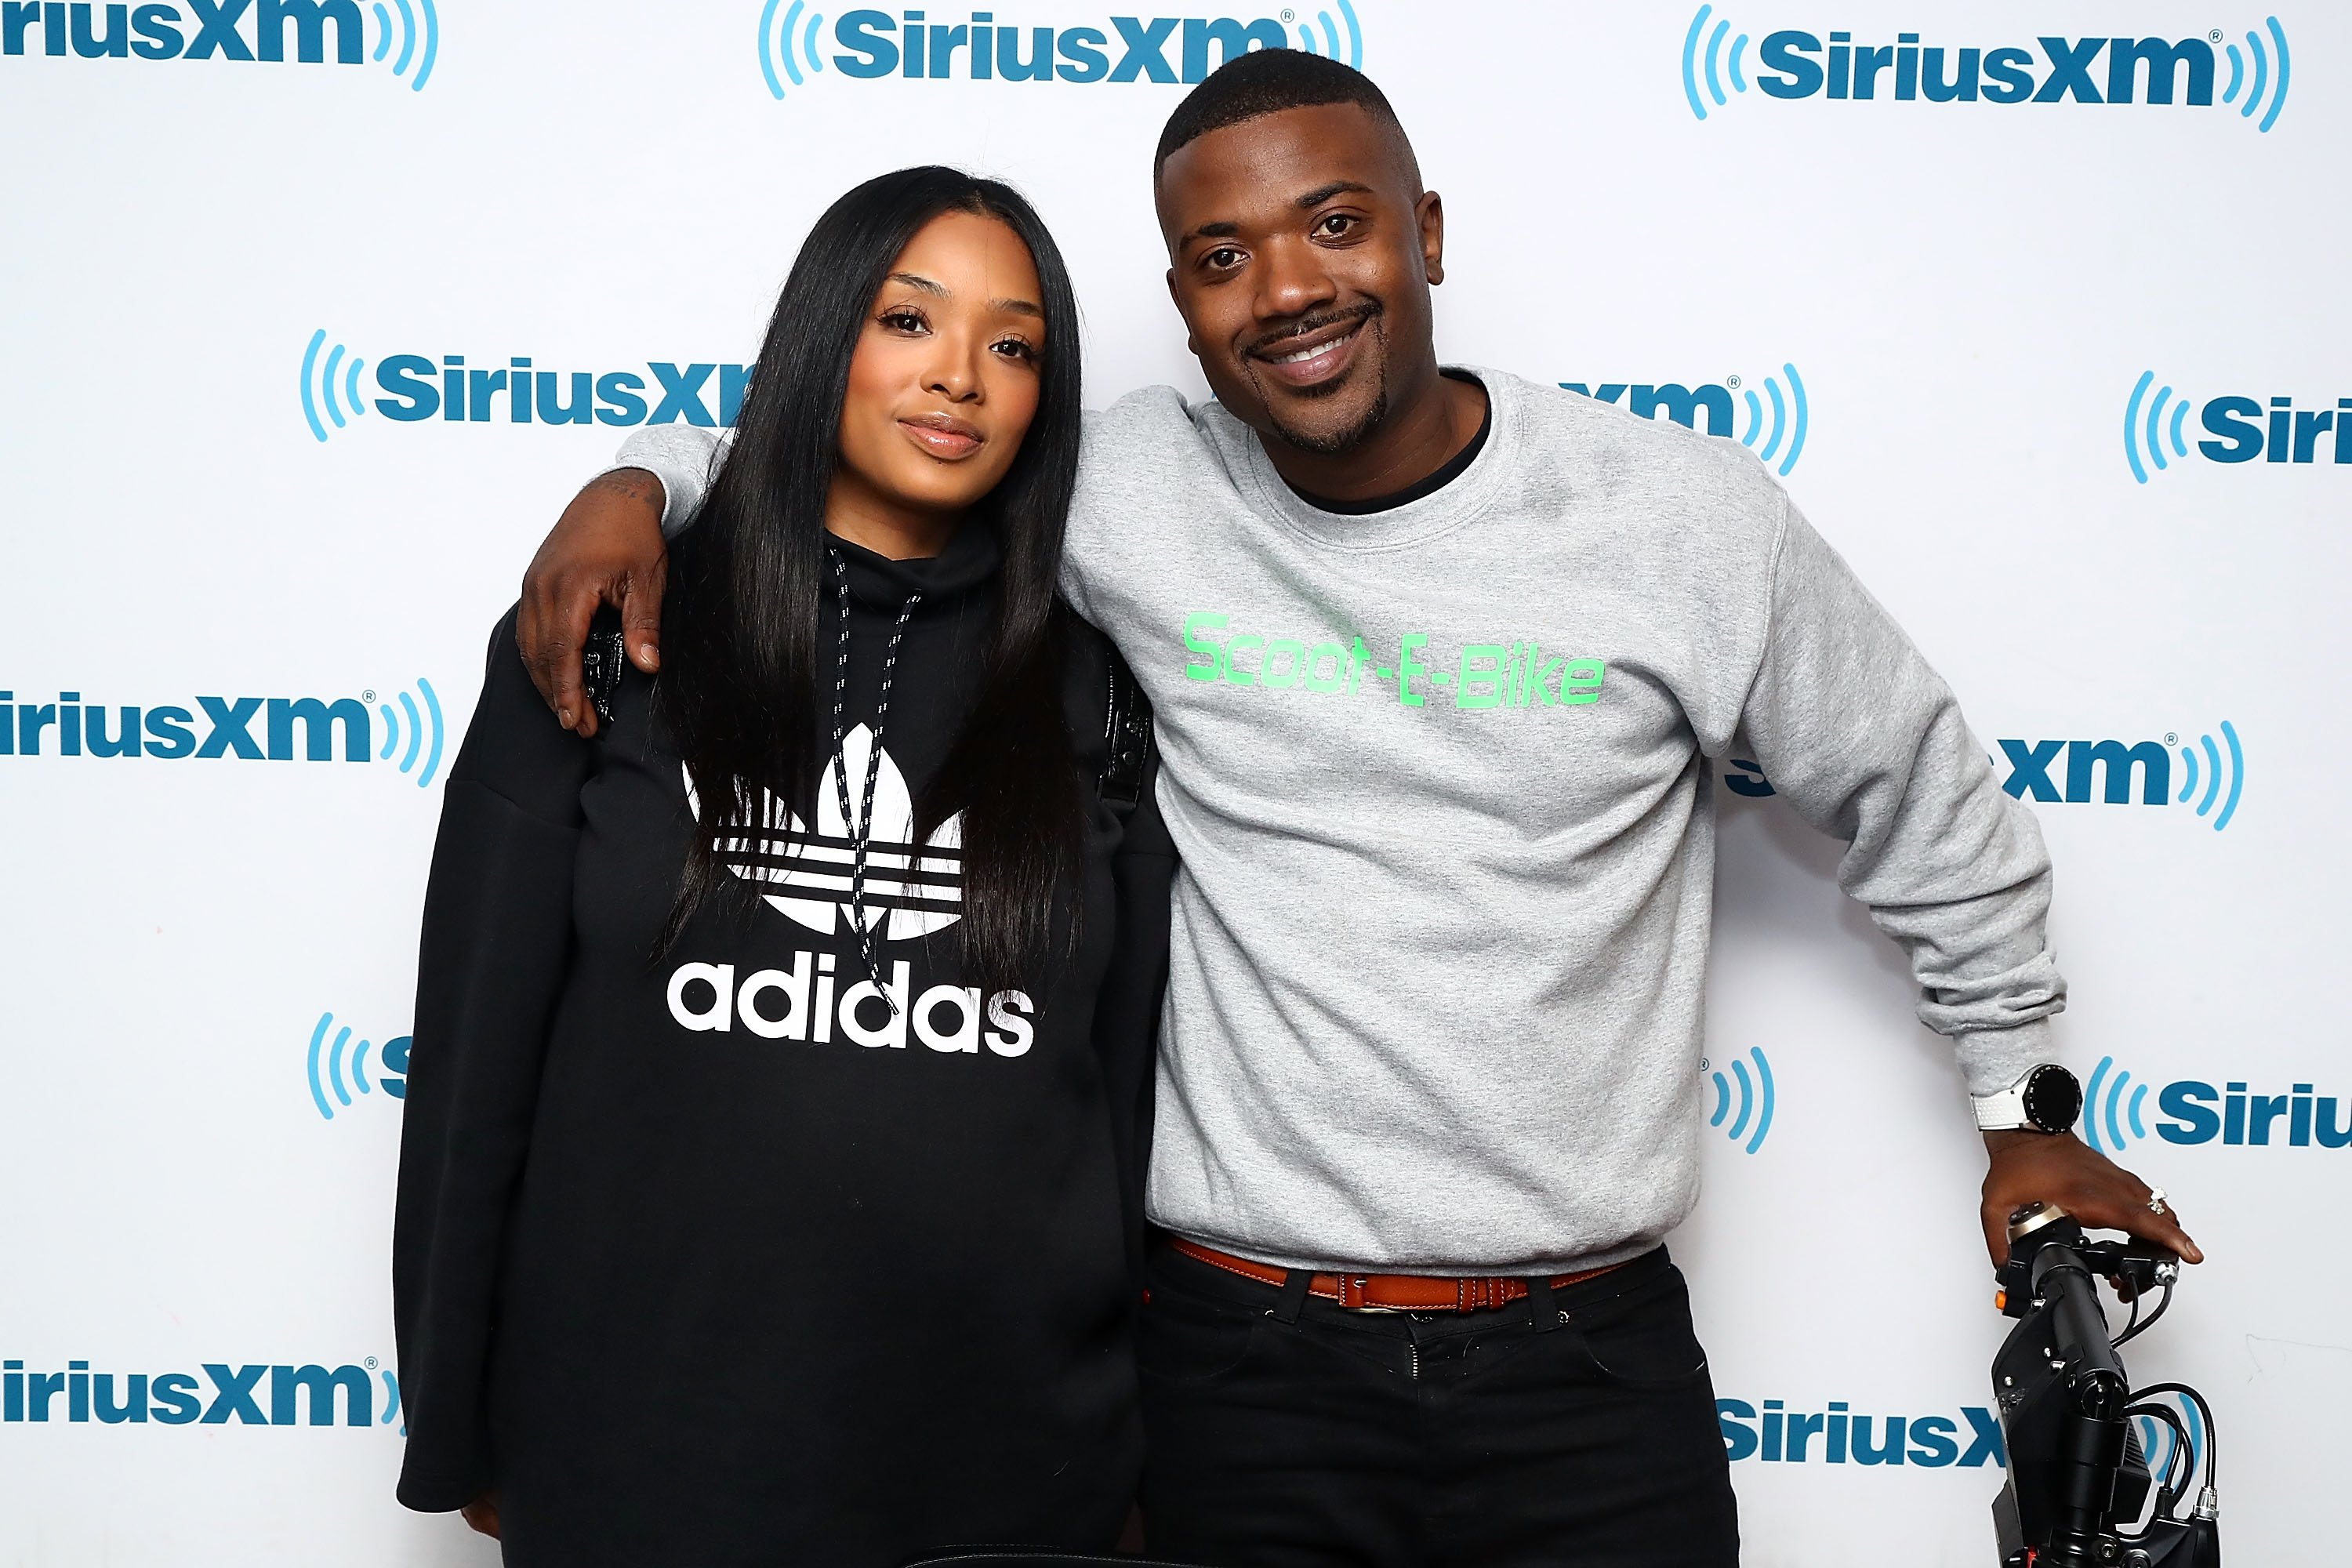 Princess Love and Ray J visit the SiriusXM Studios on March 29, 2018 in New York City | Photo: Getty Images